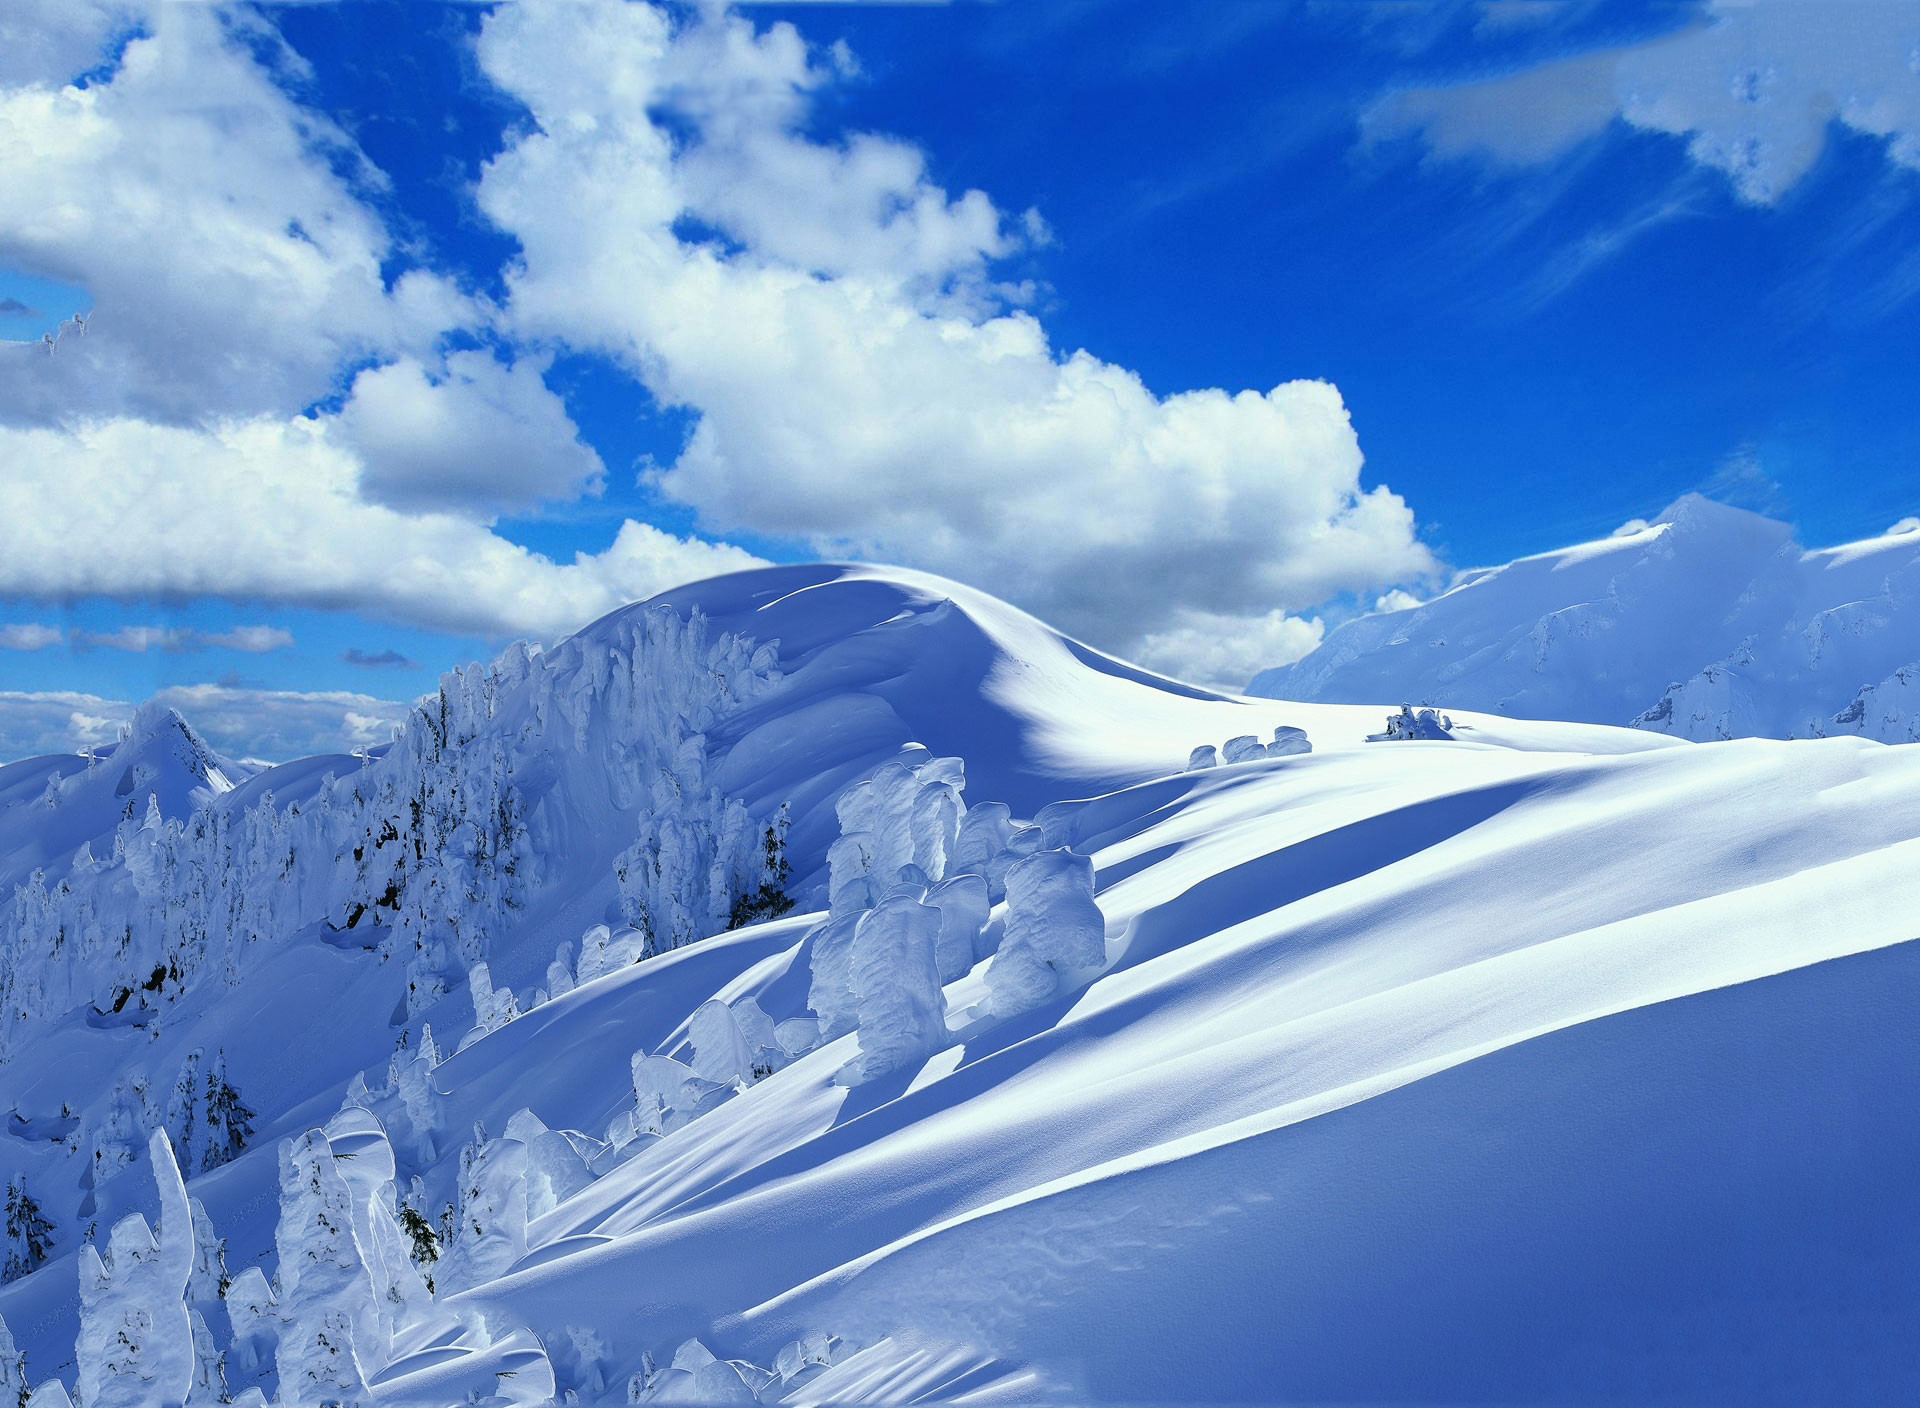 Res: 1920x1408, Snowy Mountains wallpaper